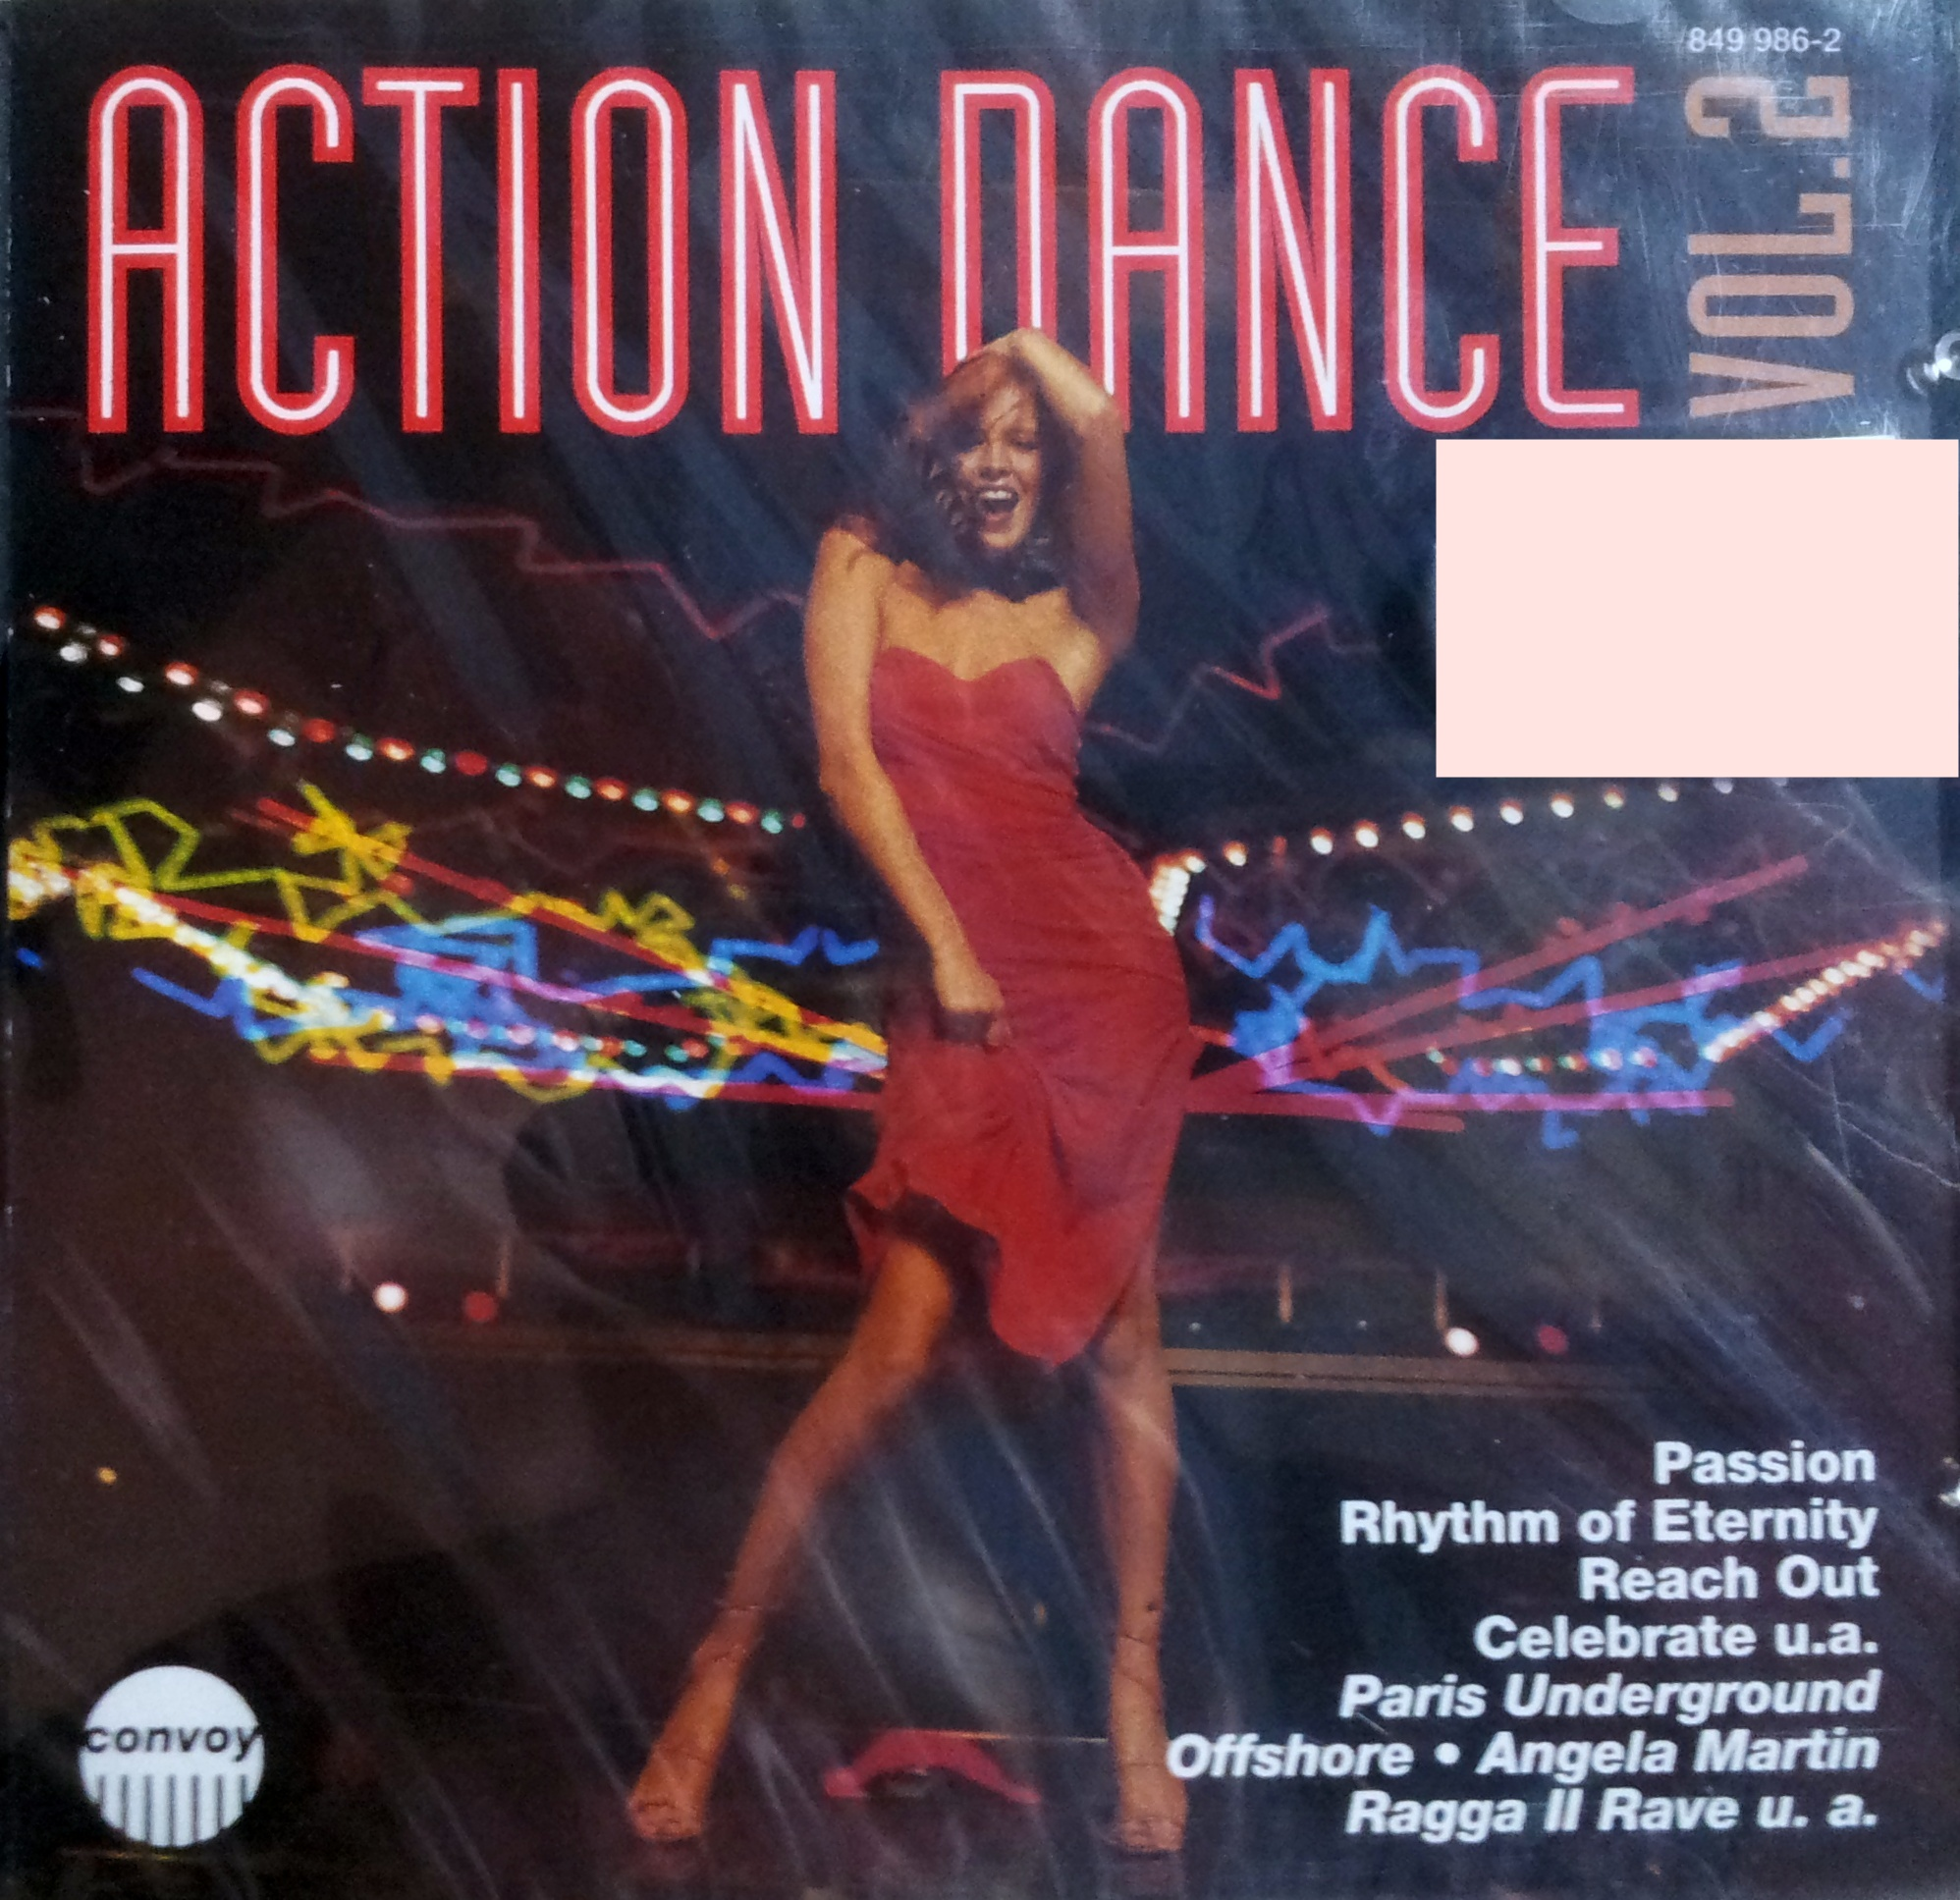 Action dance 2